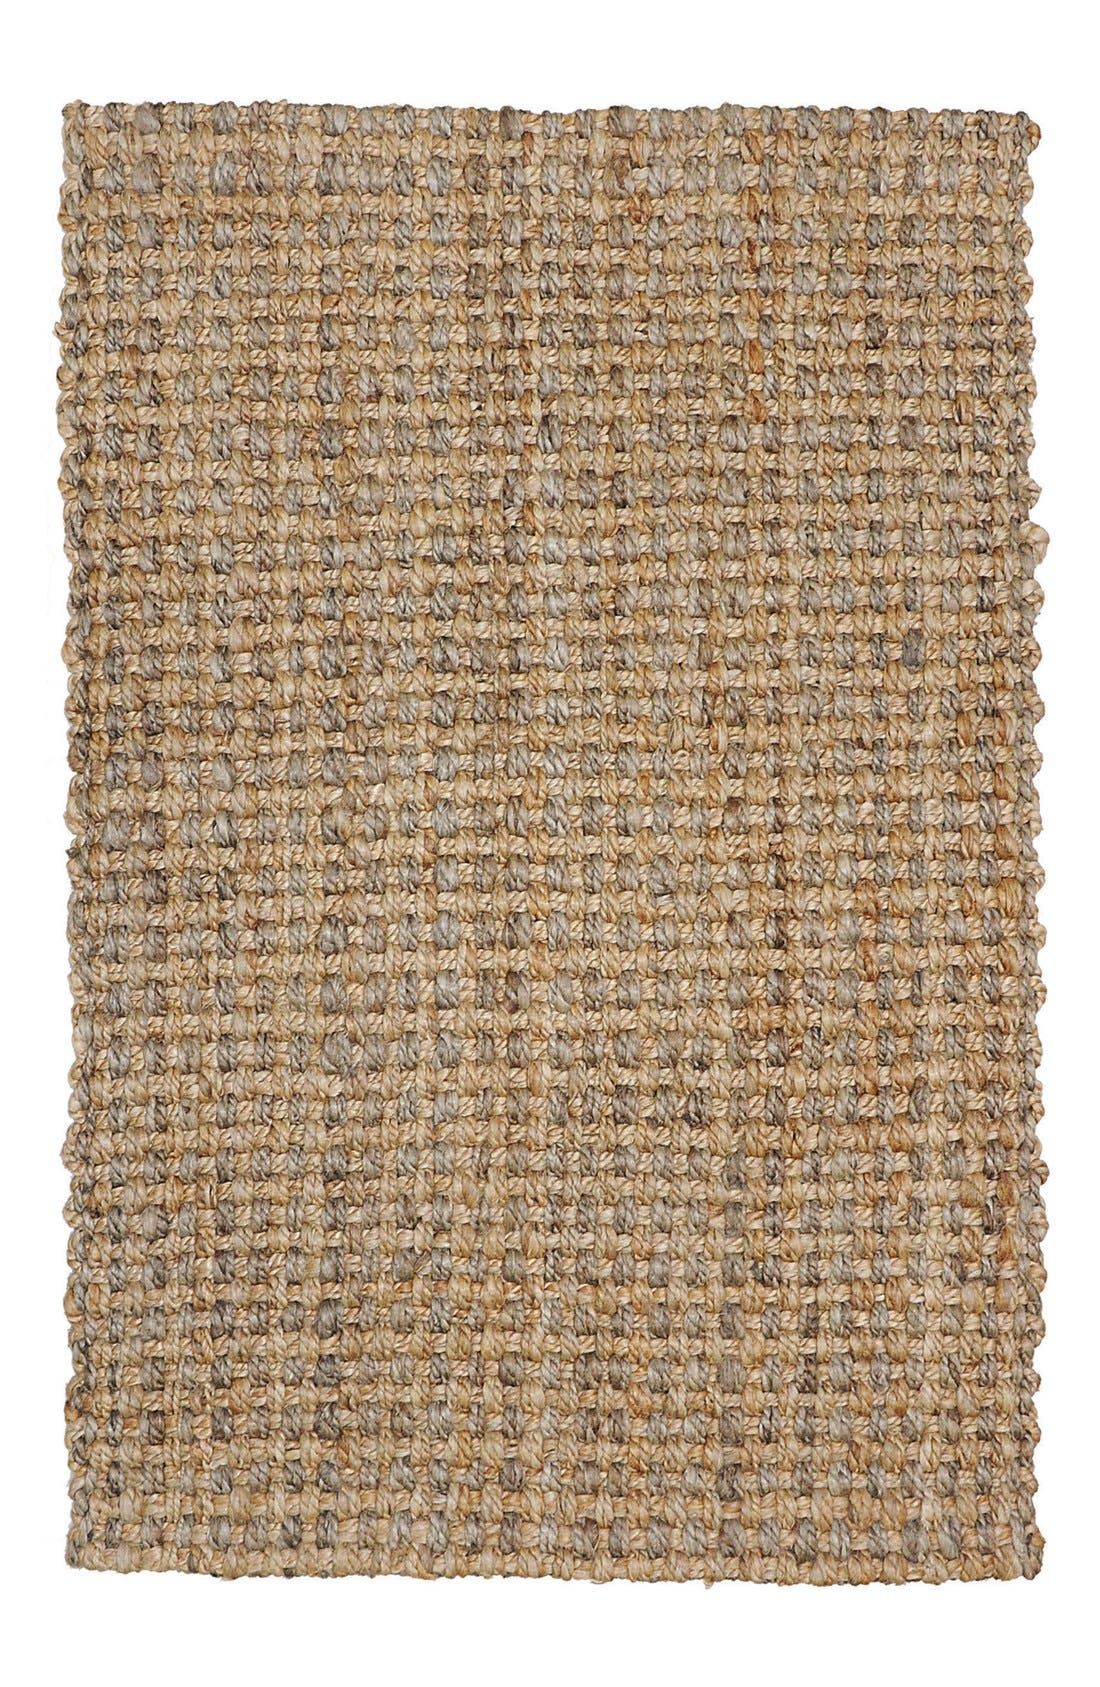 Panama Handwoven Rug,                             Main thumbnail 1, color,                             250